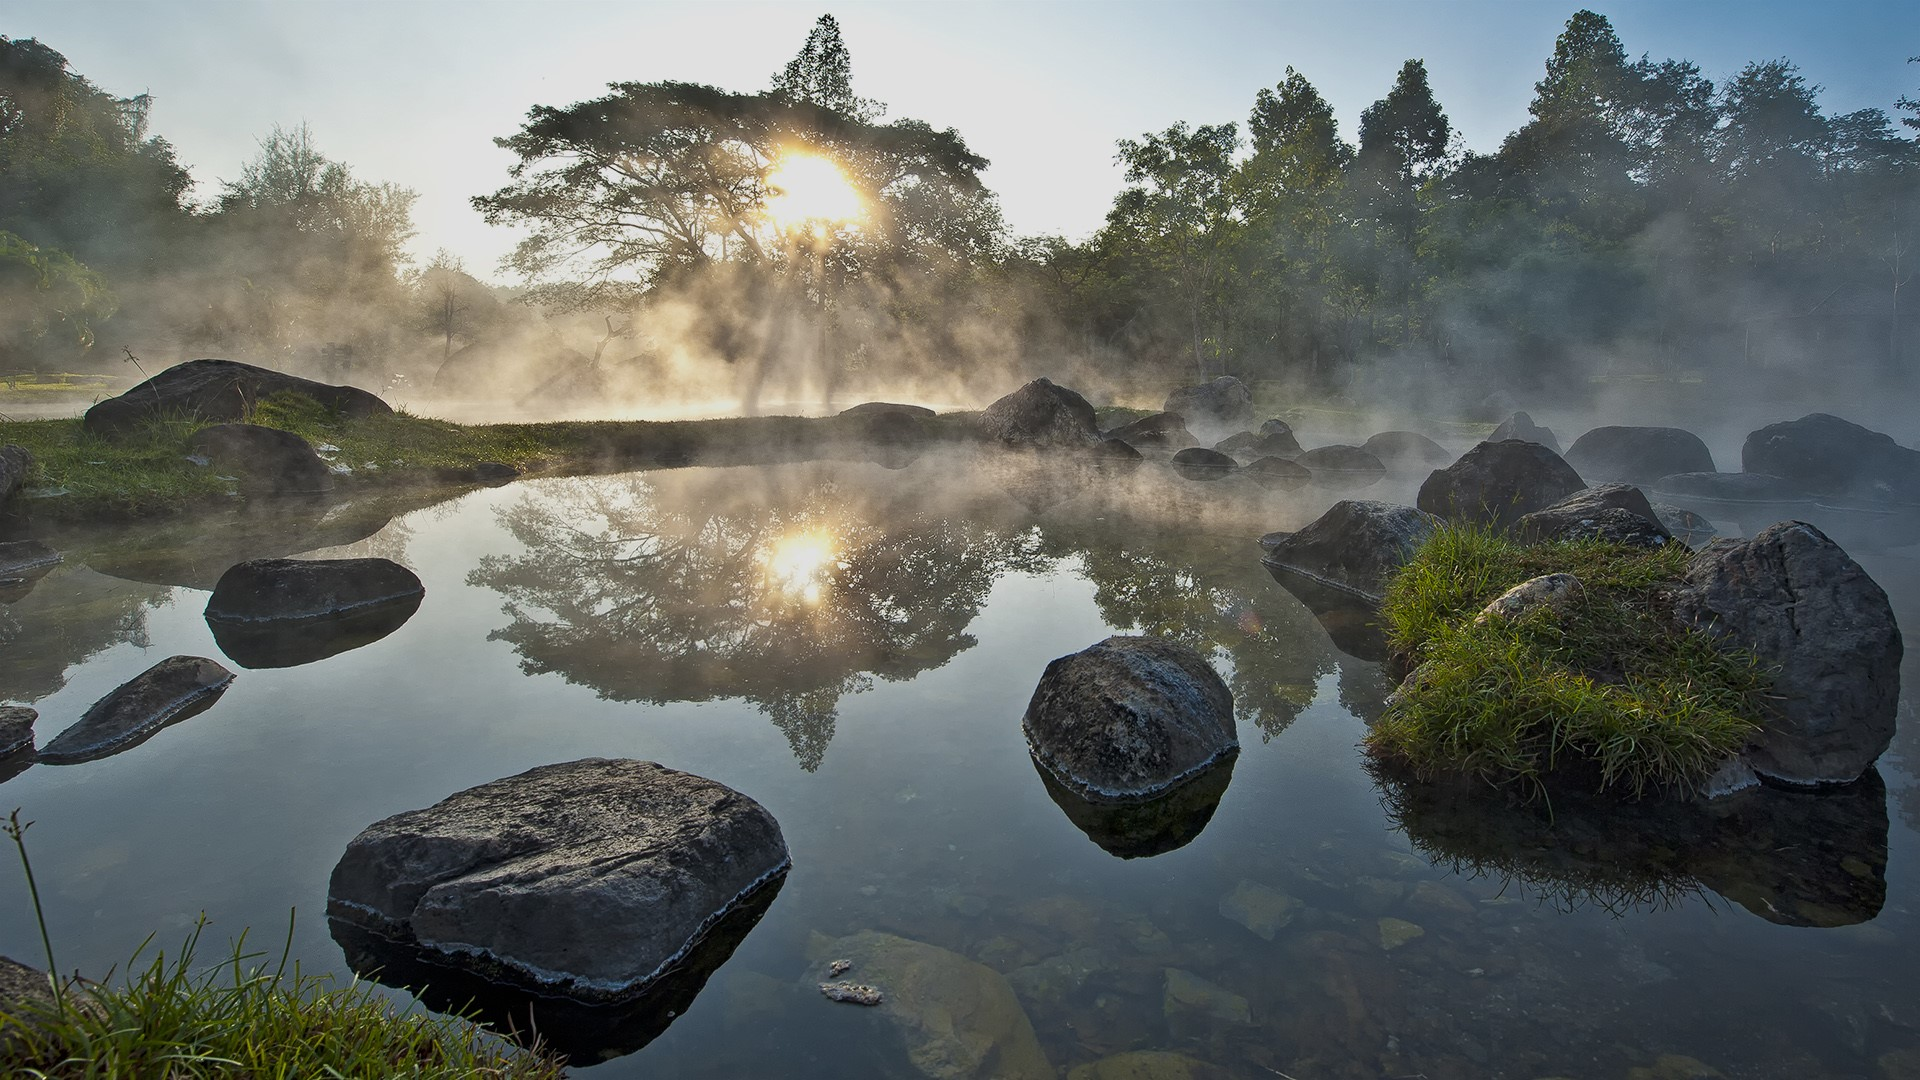 General 1920x1080 nature landscape trees water rocks reflection plants grass mist sky Sun sun rays morning Chae Son National Park Thailand